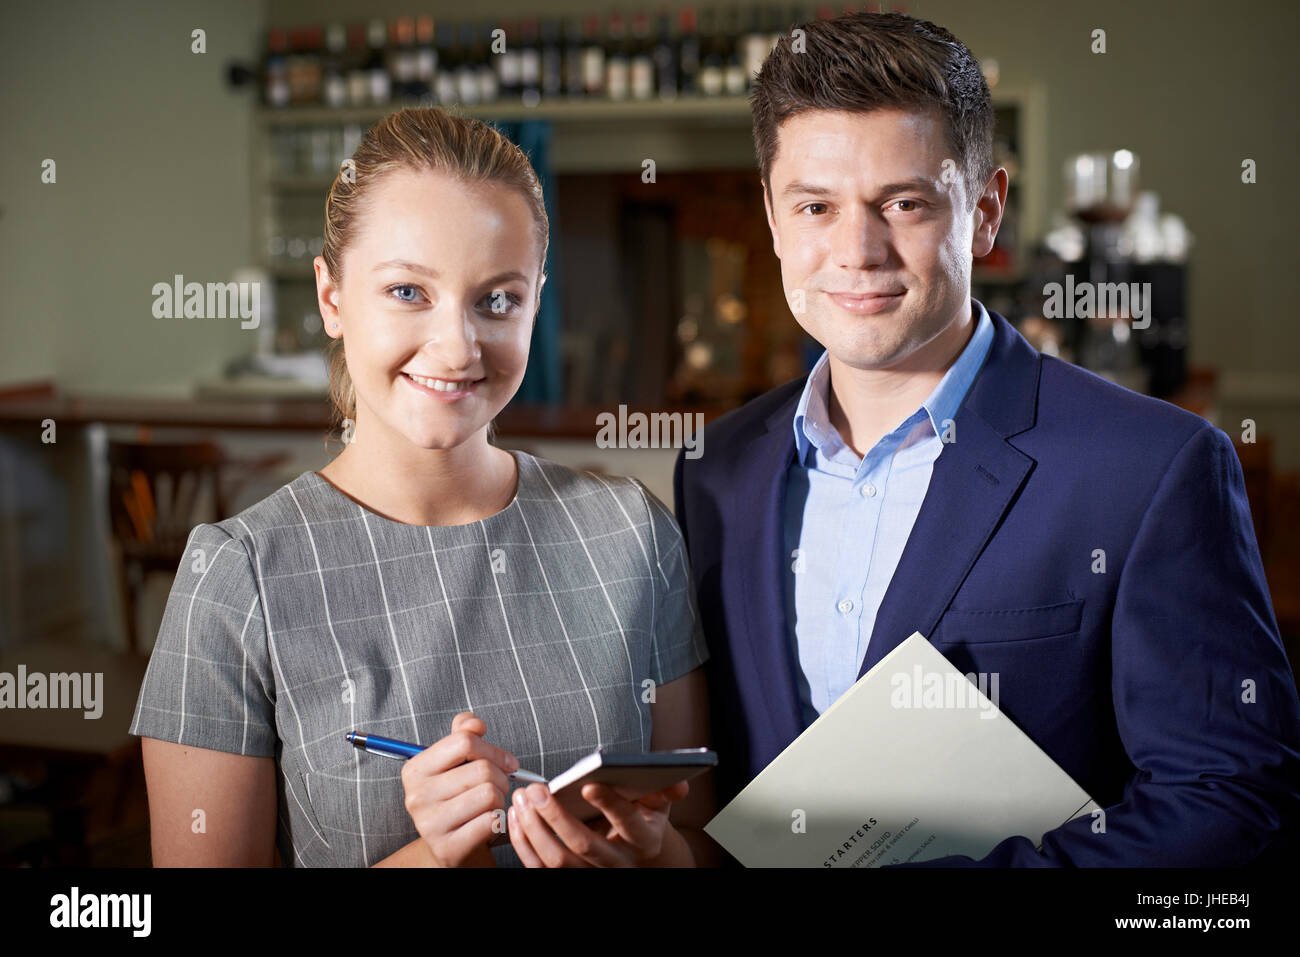 Portrait Of Owner With Waitress In Restaurant - Stock Image